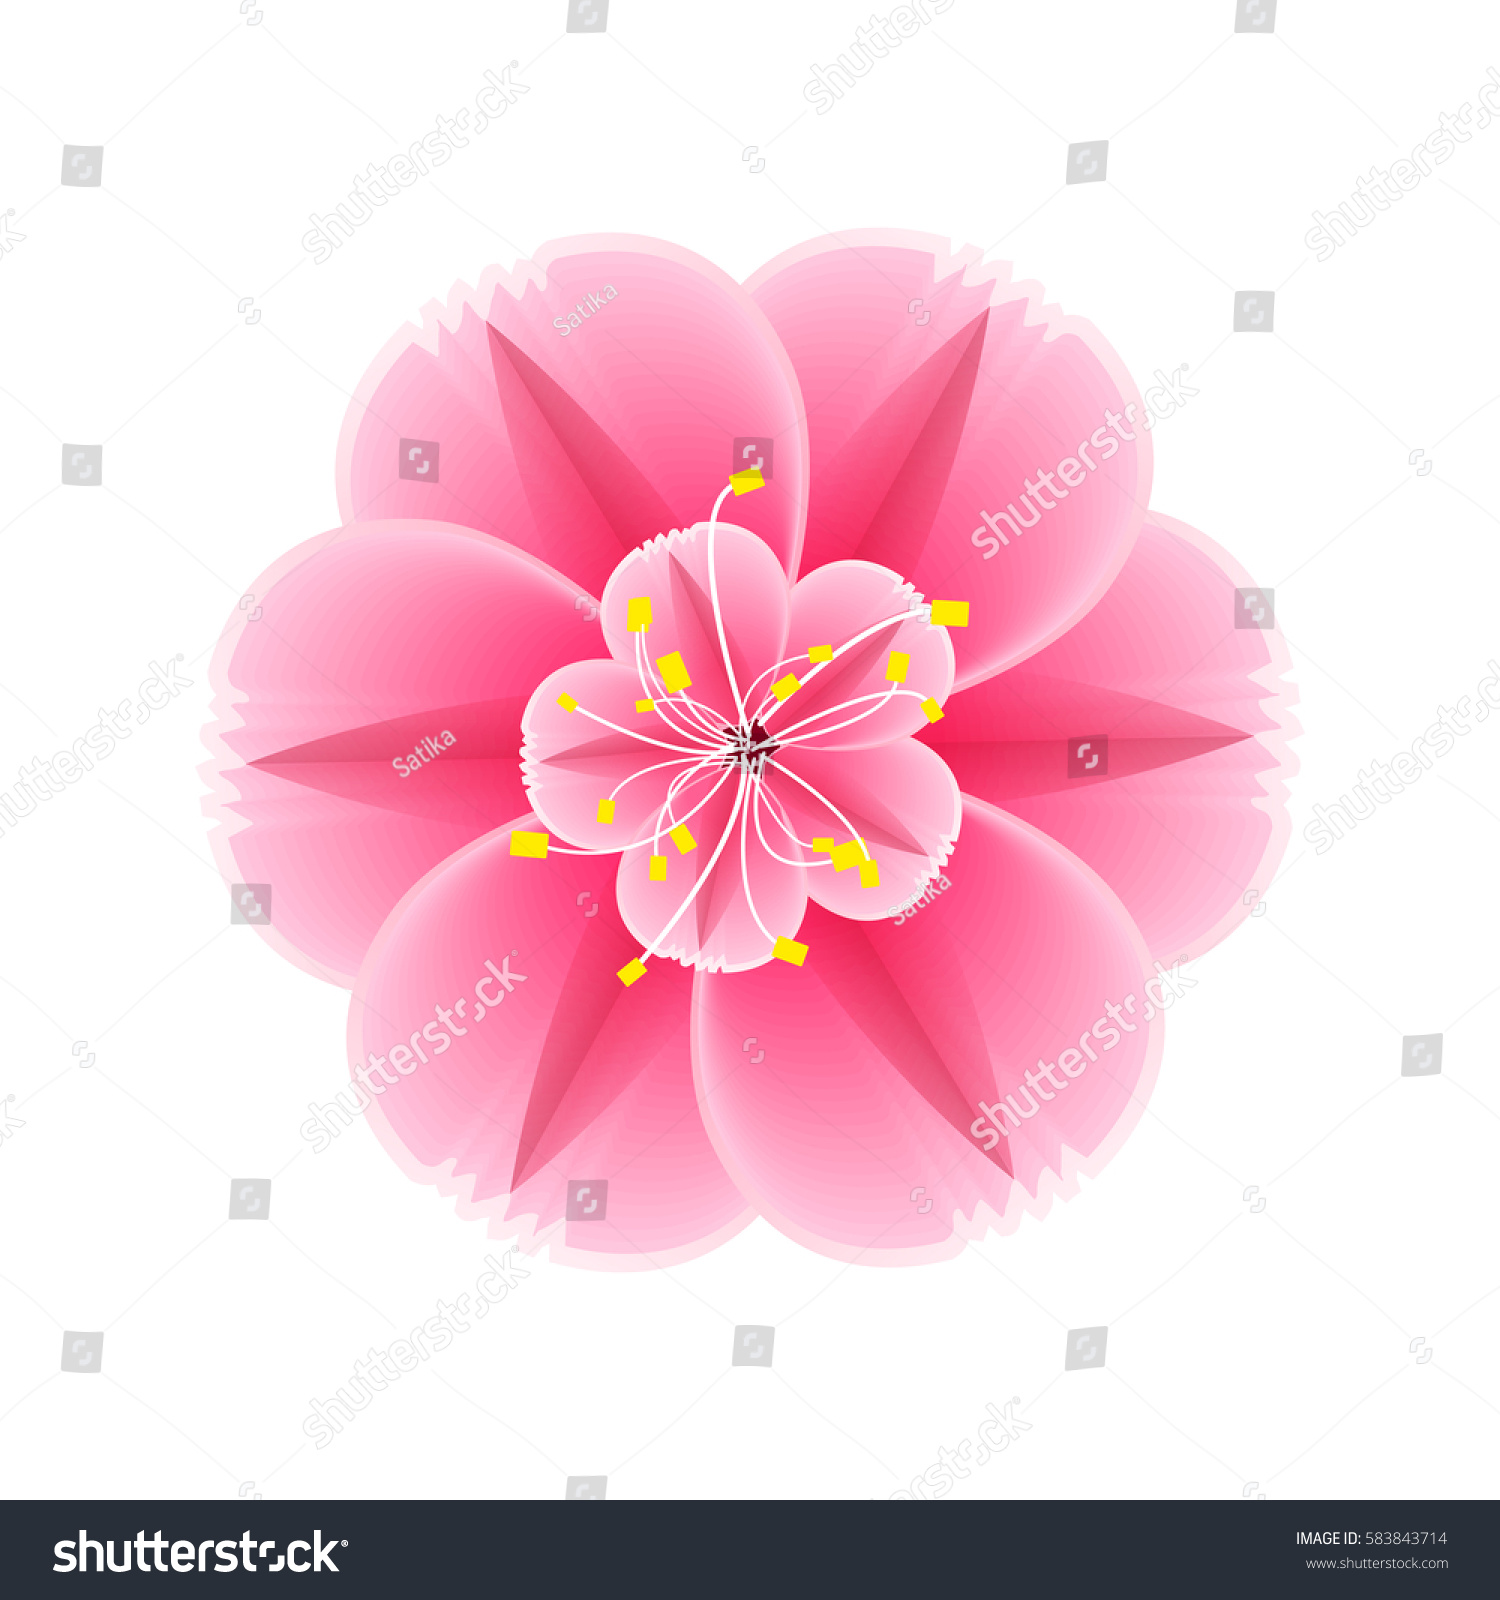 Isolated Flower Sakura Cartoon Pink White Stock Vector Royalty Free